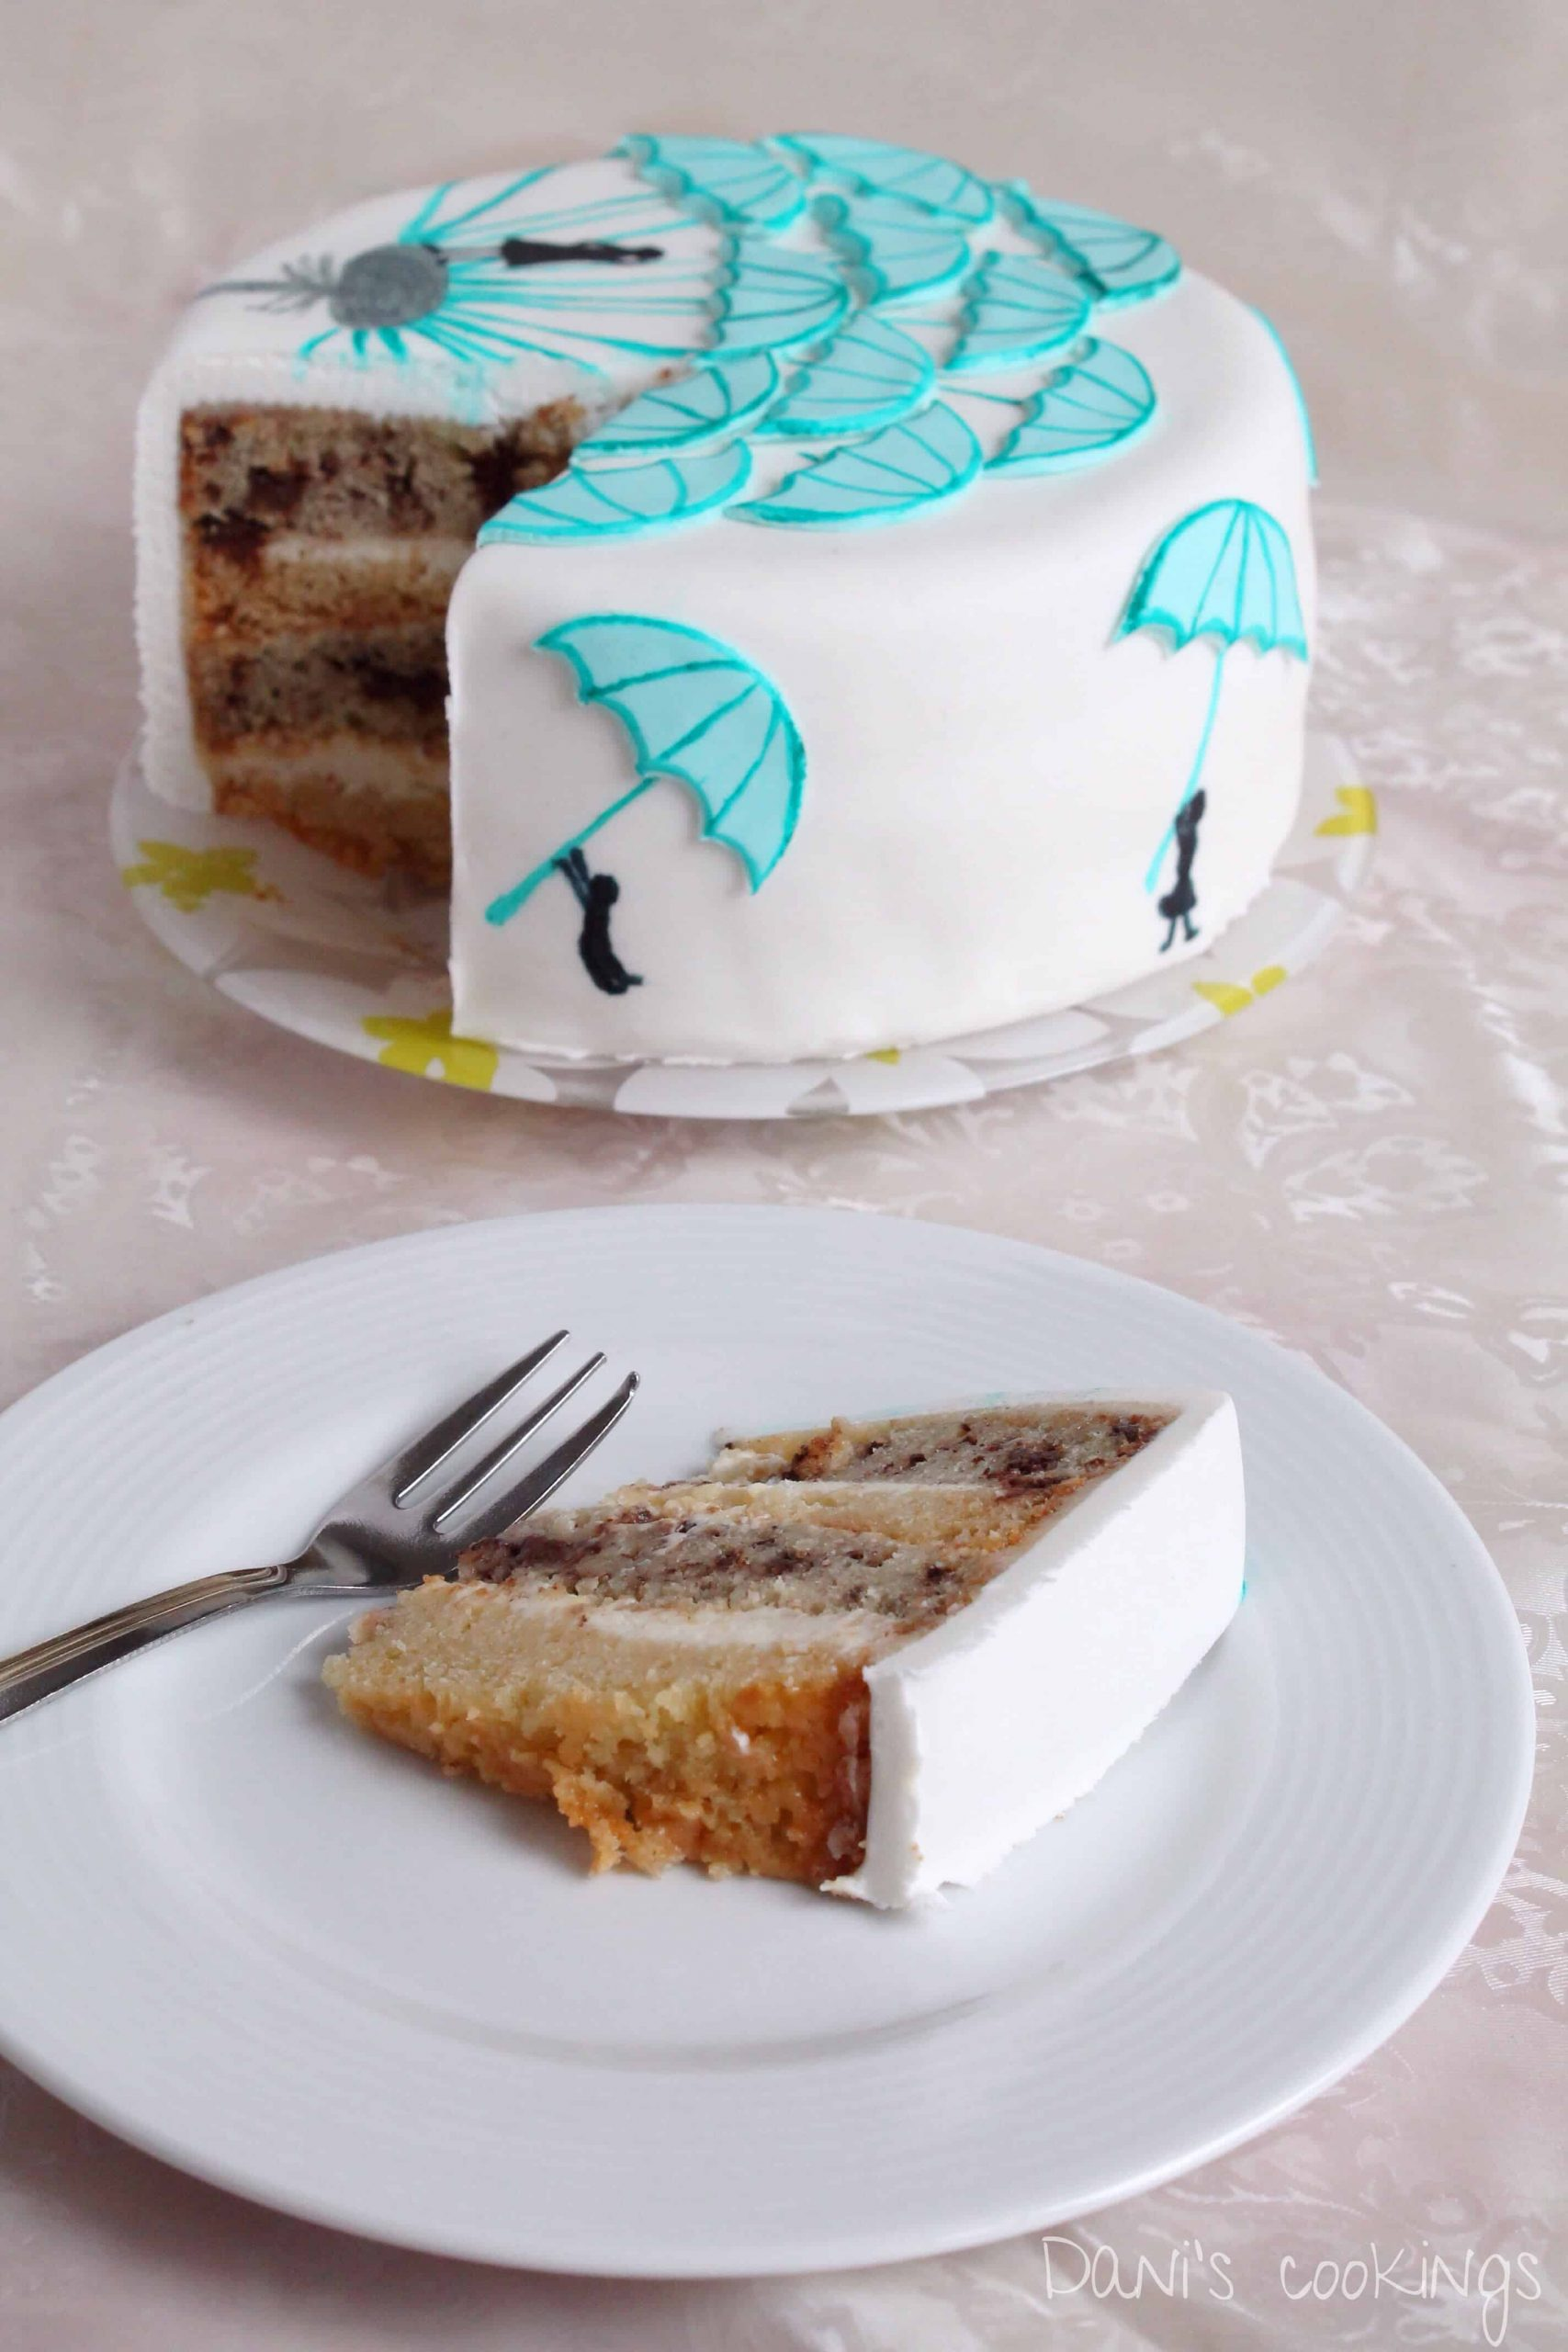 dandelion cake with white and black chocolate - daniscookings.com